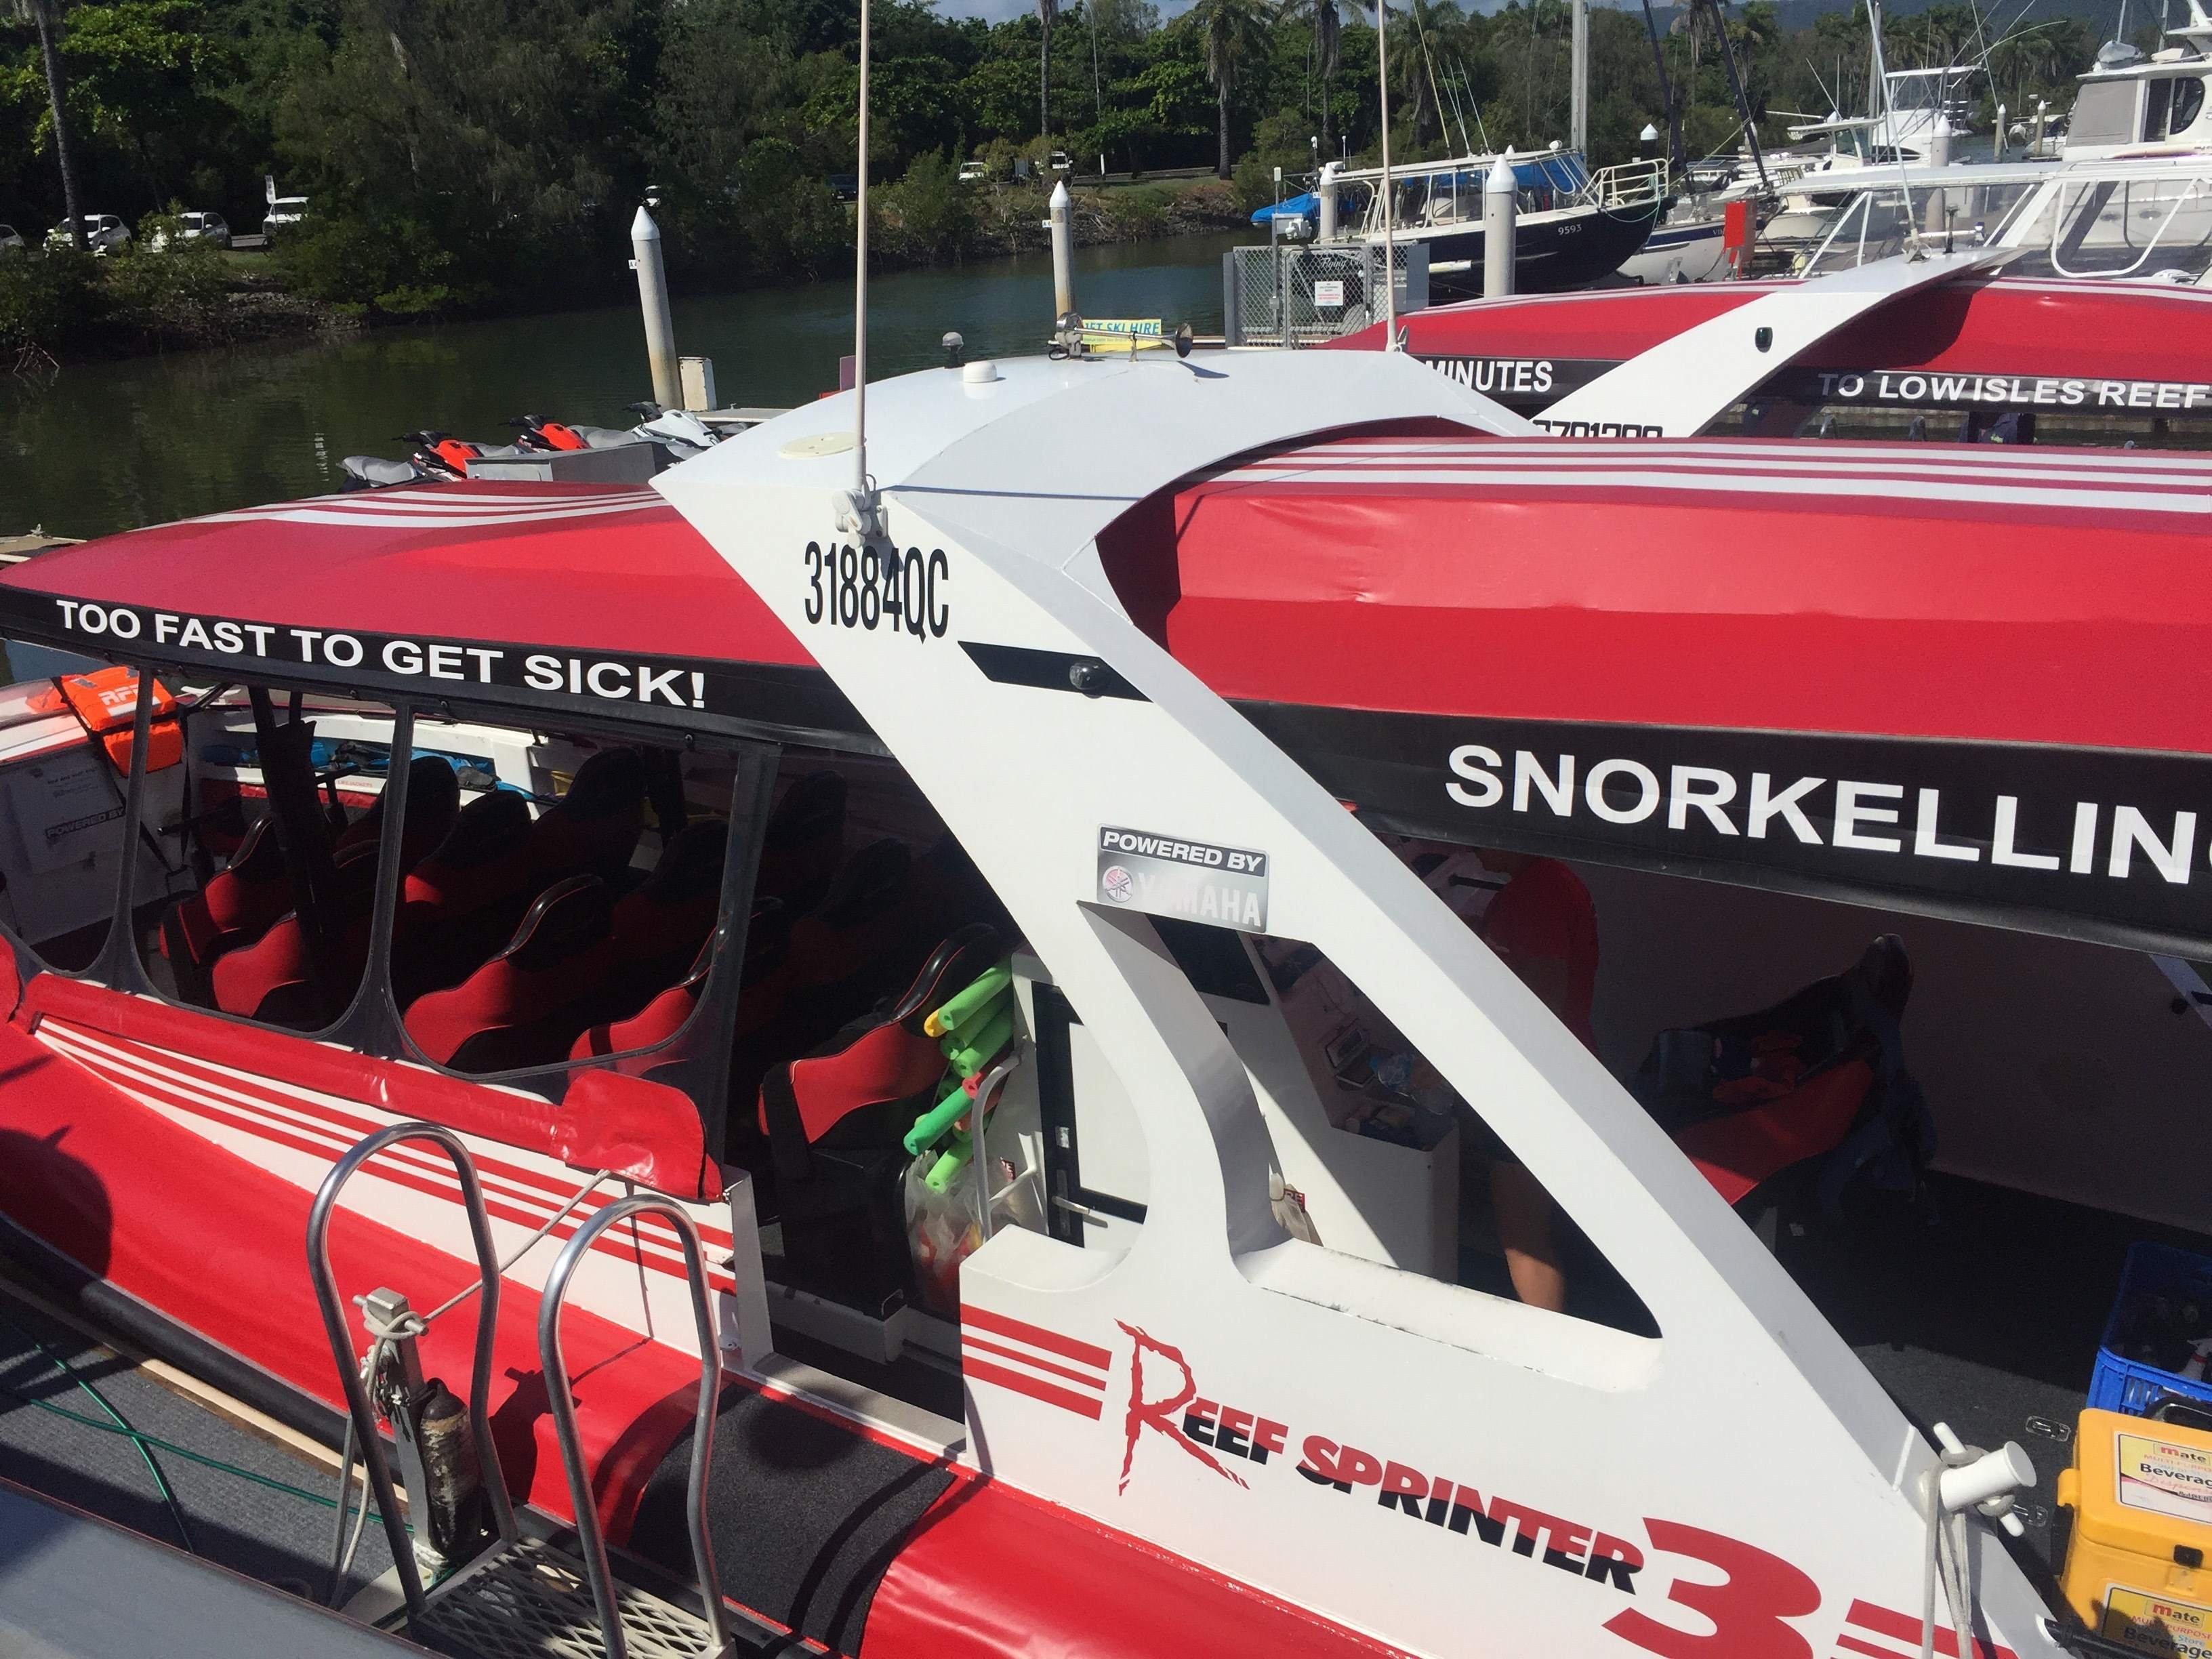 Reef Sprinter snorkelling tours